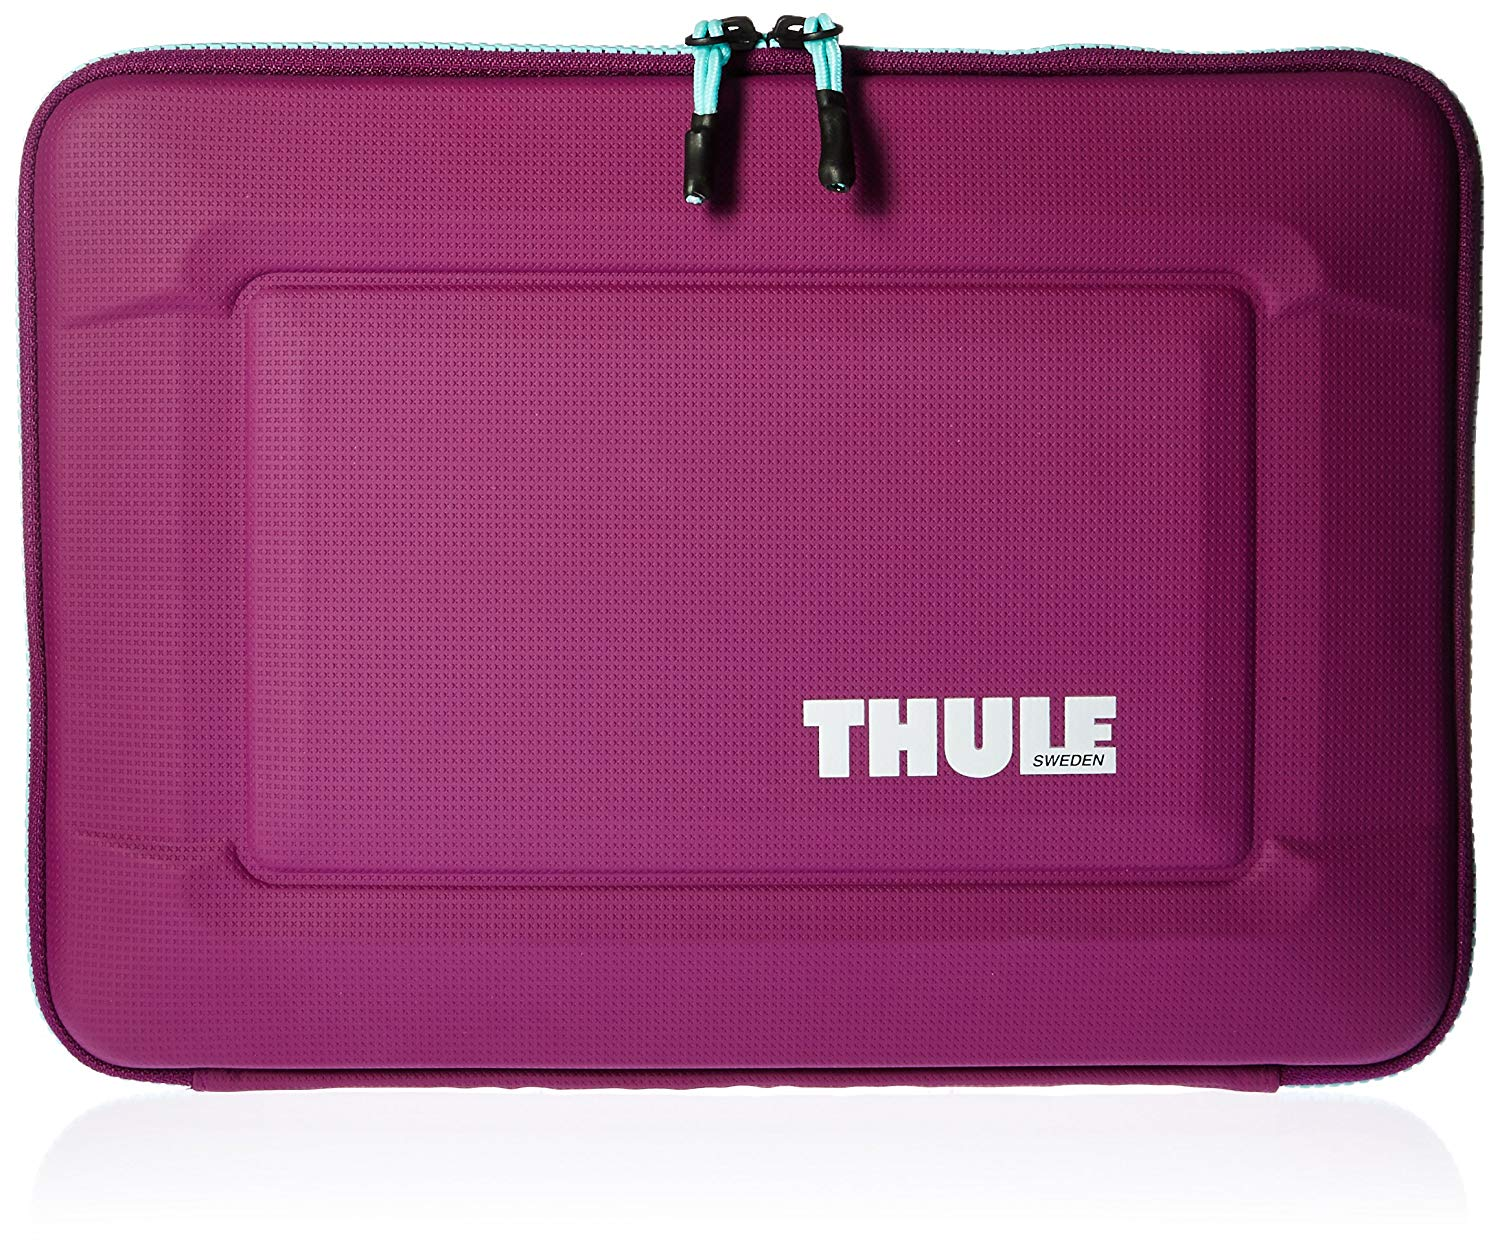 Thule Tough Computer Case